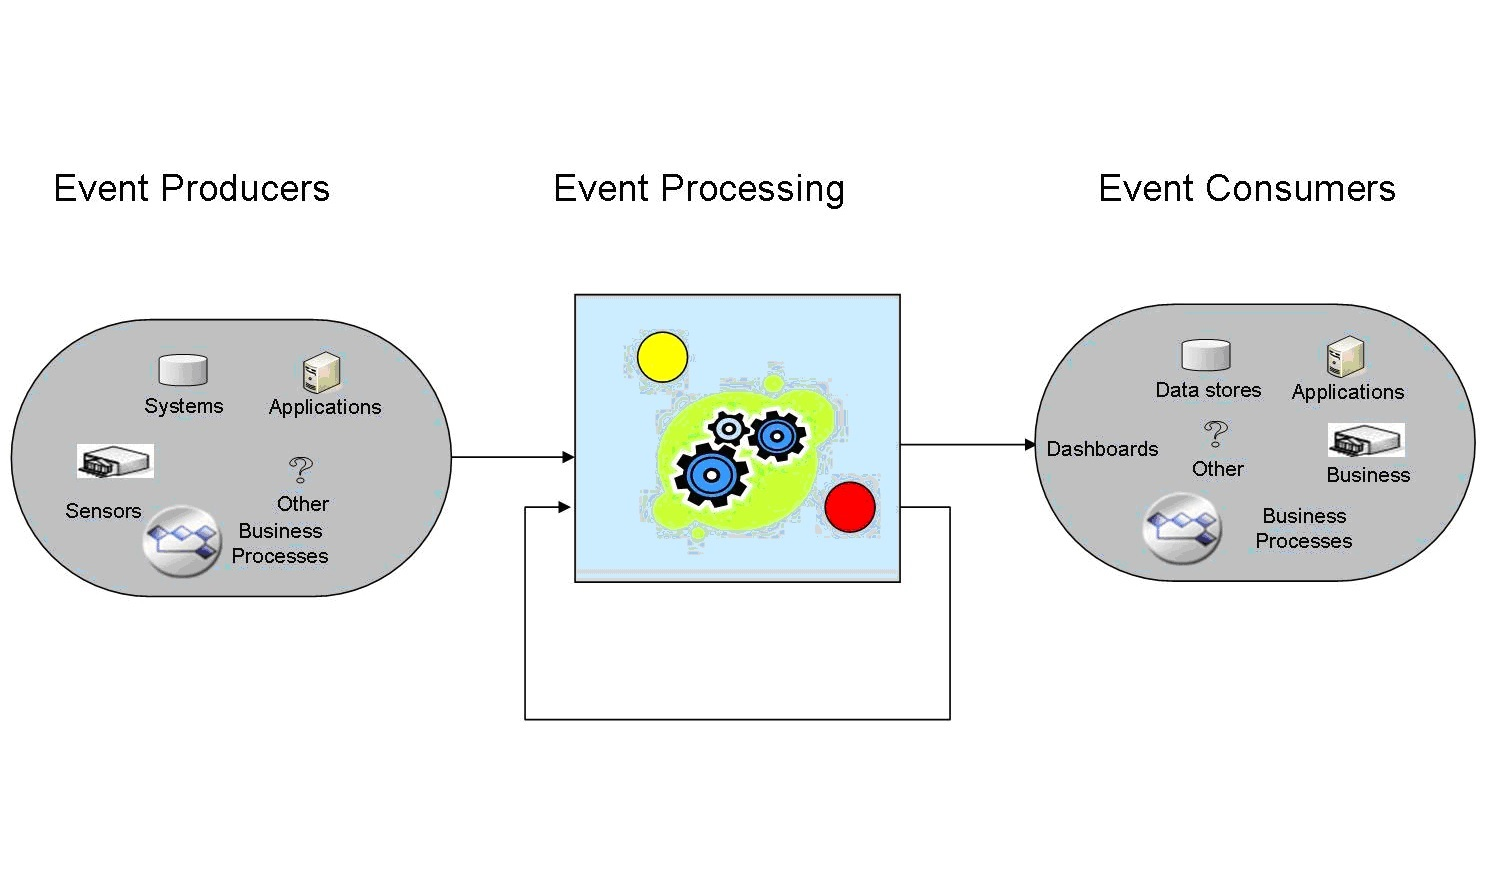 On Microservices and Event-Driven Architectures - RTInsights